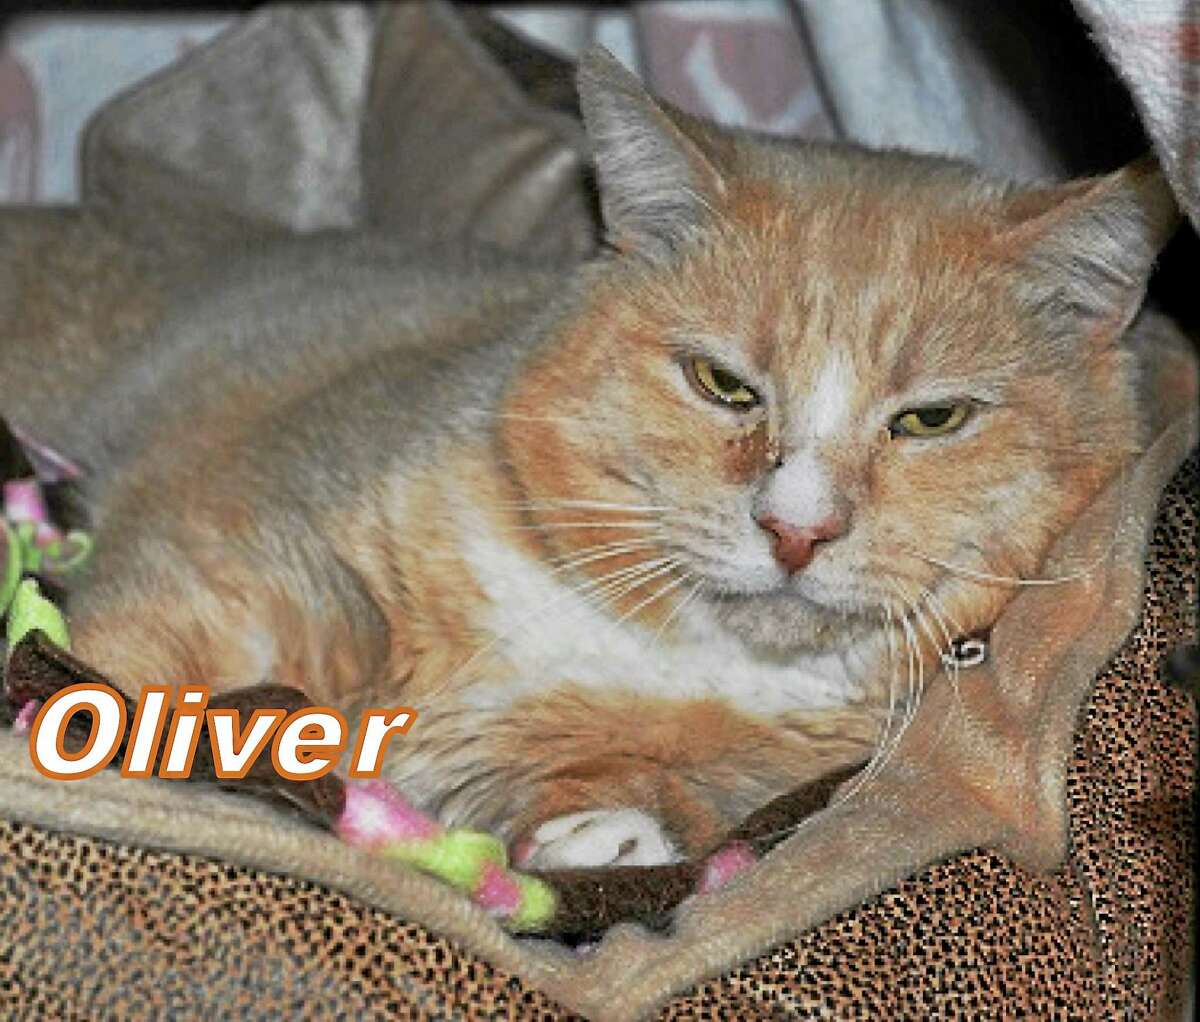 I'm Oliver! I am about 2 years old, Orange/Buff-colored neutered male. I am a laid back, easy-going boy and love to be petted and snuggled. I get along well with other cats, but I would also do just fine as the only pet. A quiet home with a devoted owner who will give me time to adjust is what I am looking for. Once I get to know you, I will give you lots of love in return! I am patiently waiting for someone to give me a chance of a forever home where I can give and get love and attention! Cat Tales is seeking permanent adoption for me and will tell you the best way to take care of me. Please call Cat Tales at (860) 344-9043 or Email: info@CatTalesCT.org to inquire about Oliver!